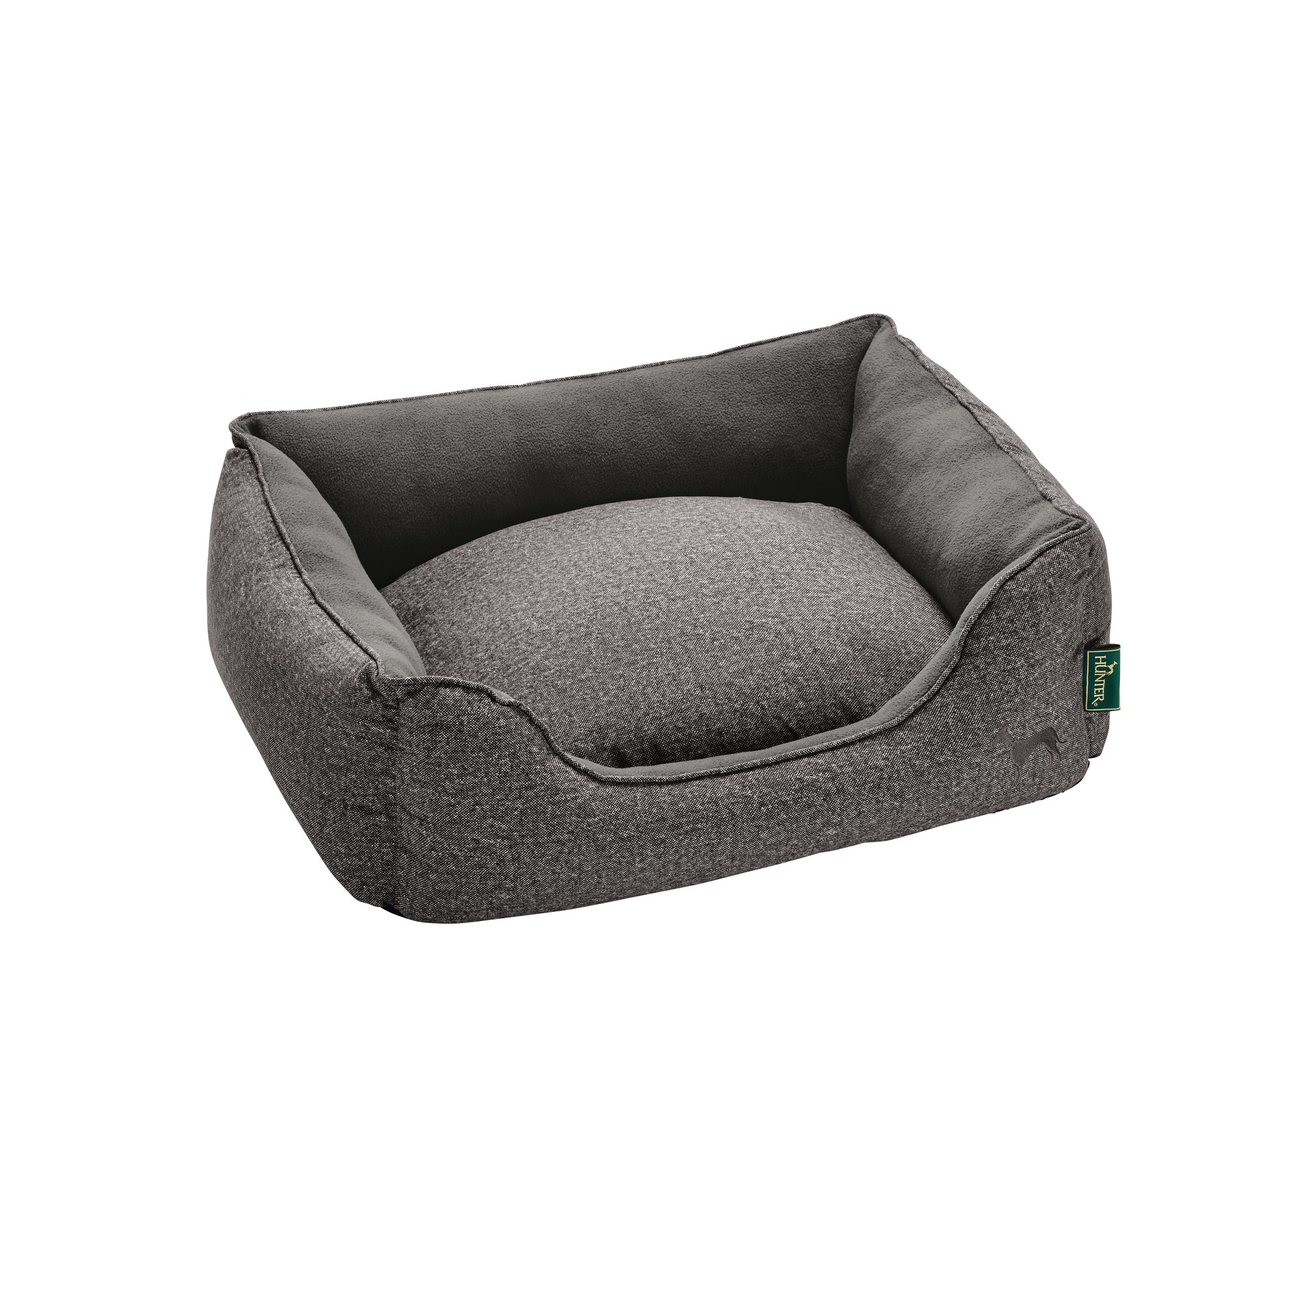 Hunter Hundebett Boston Cozy, 80x60 cm, grau